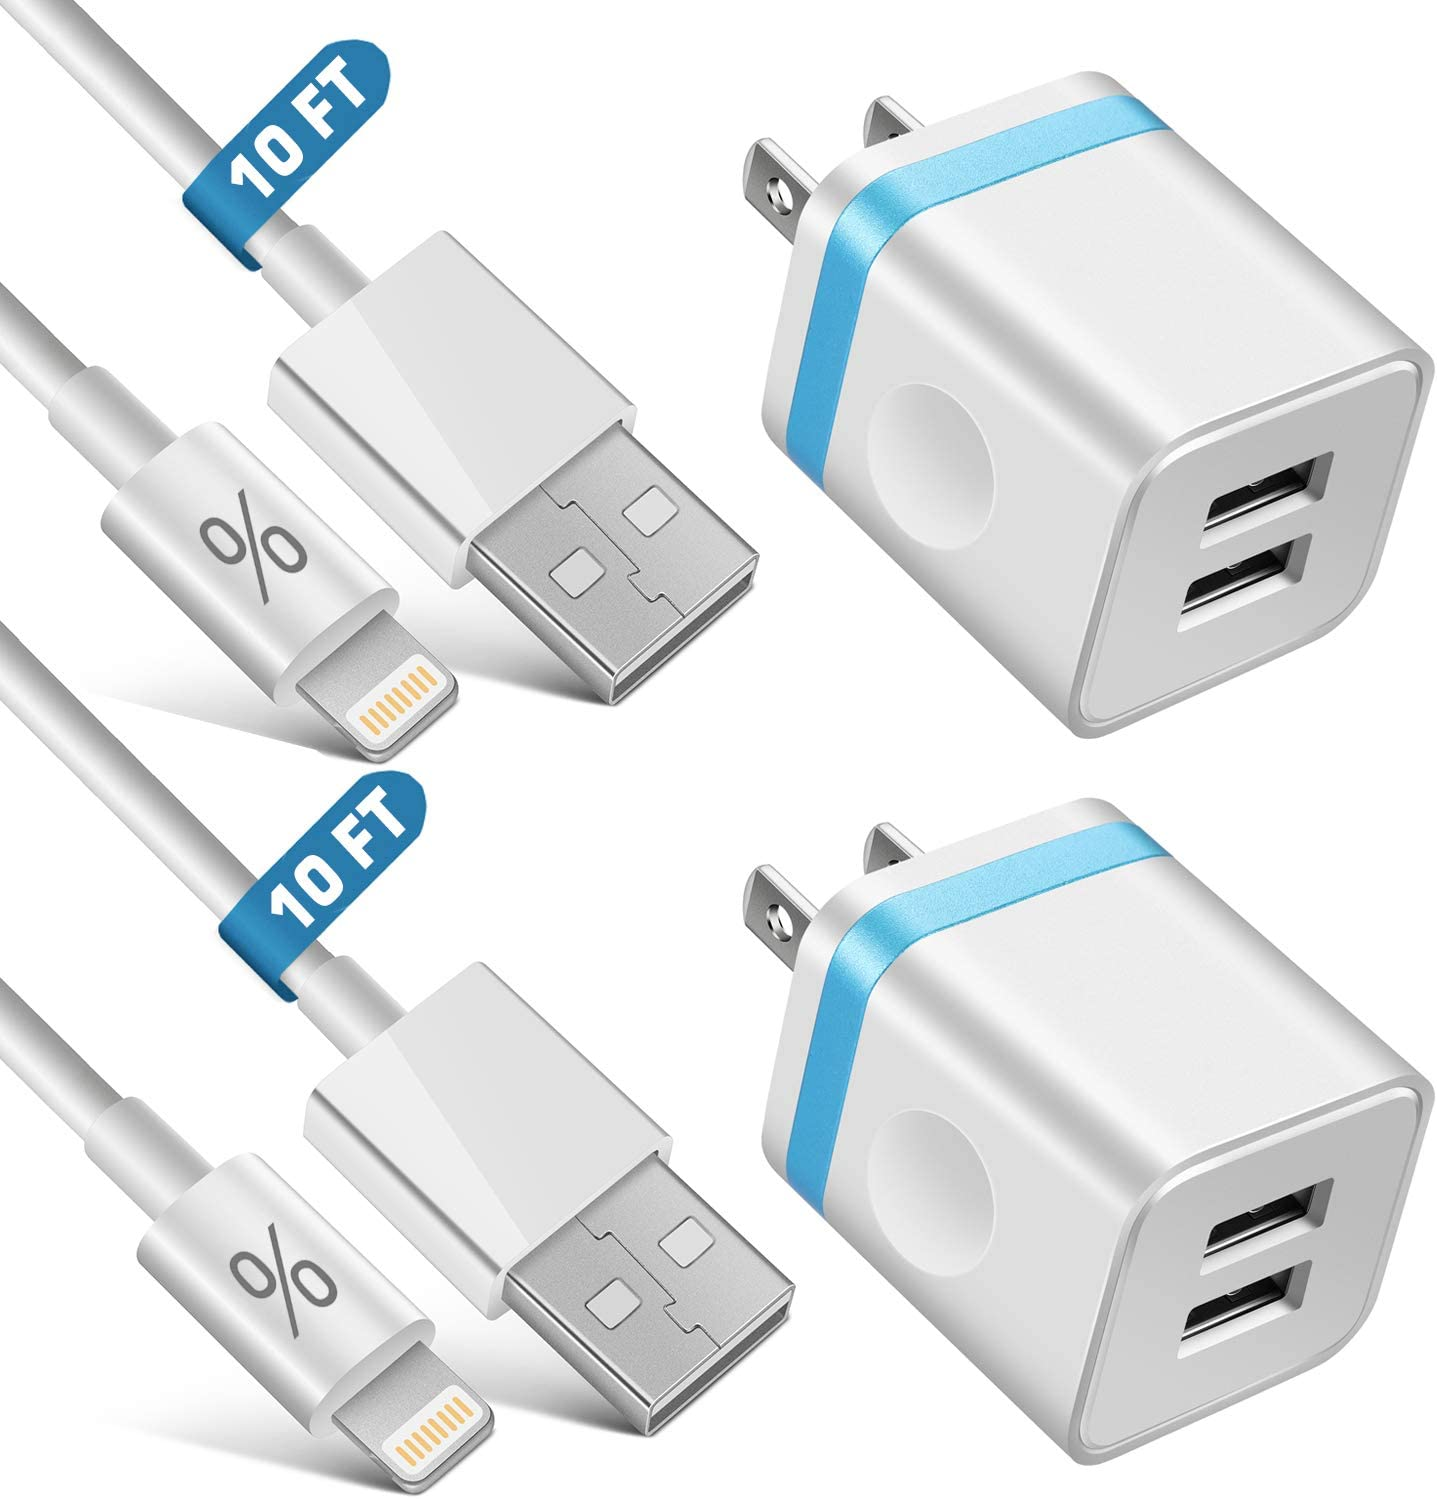 LUOSIKE iPhone Charger, 2-Pack 10 FT Long Lightning Cable Fast Charging Sync Cord with 2X Dual USB Wall Charger Plug Compatible with iPhone 11 Xs Max XR X 8 7 6S Plus SE iPad Mini Air Pro (4 in 1)